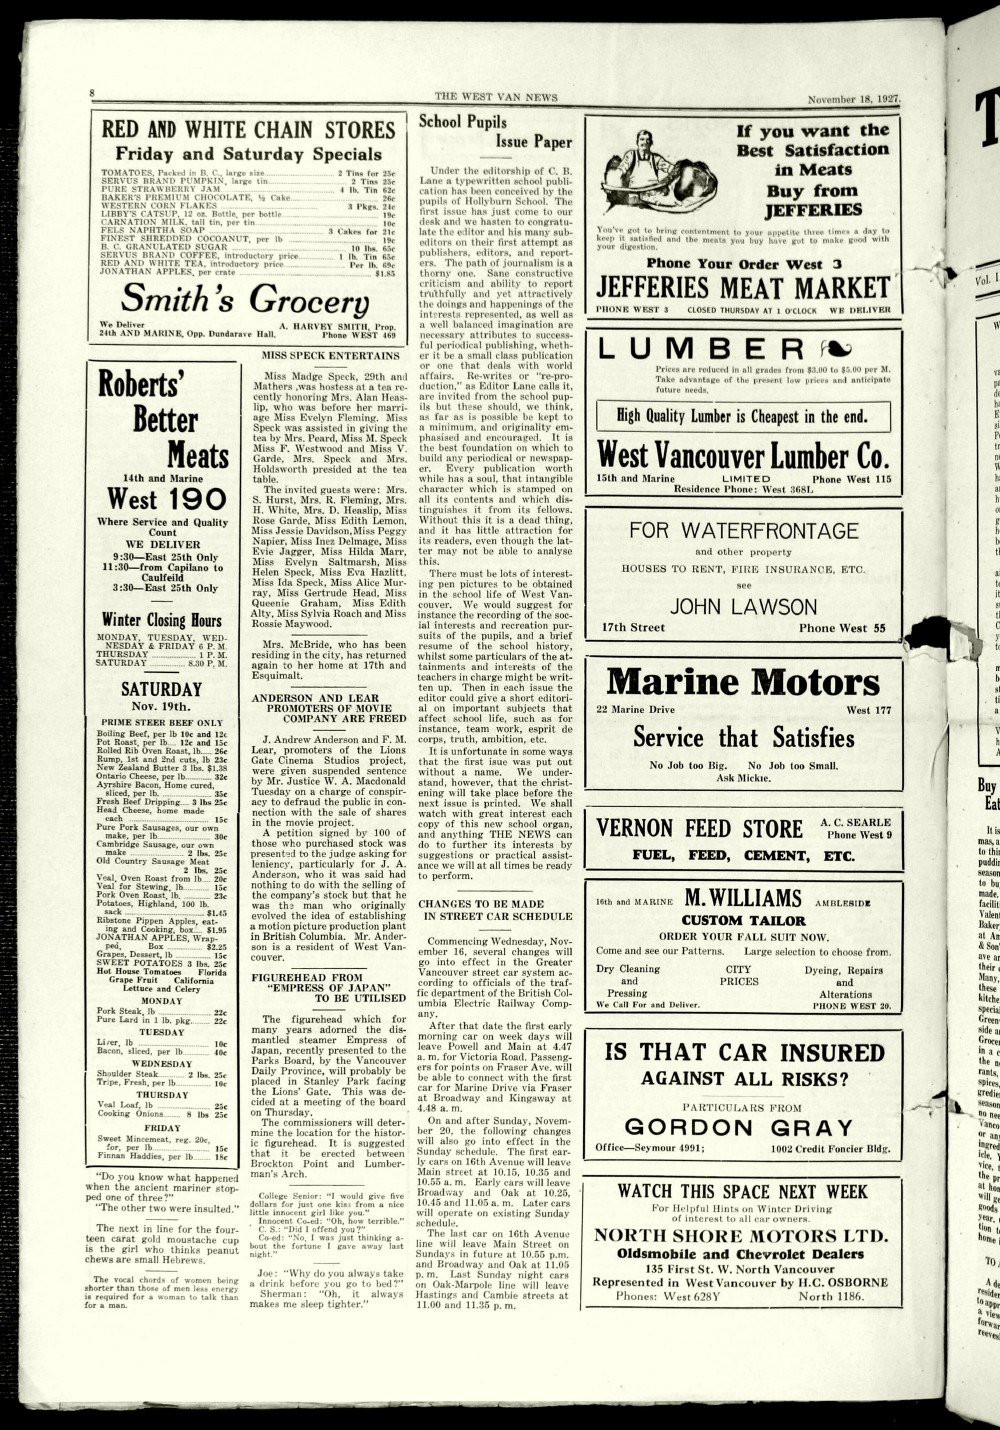 West Van. News (West Vancouver), 18 Nov 1927